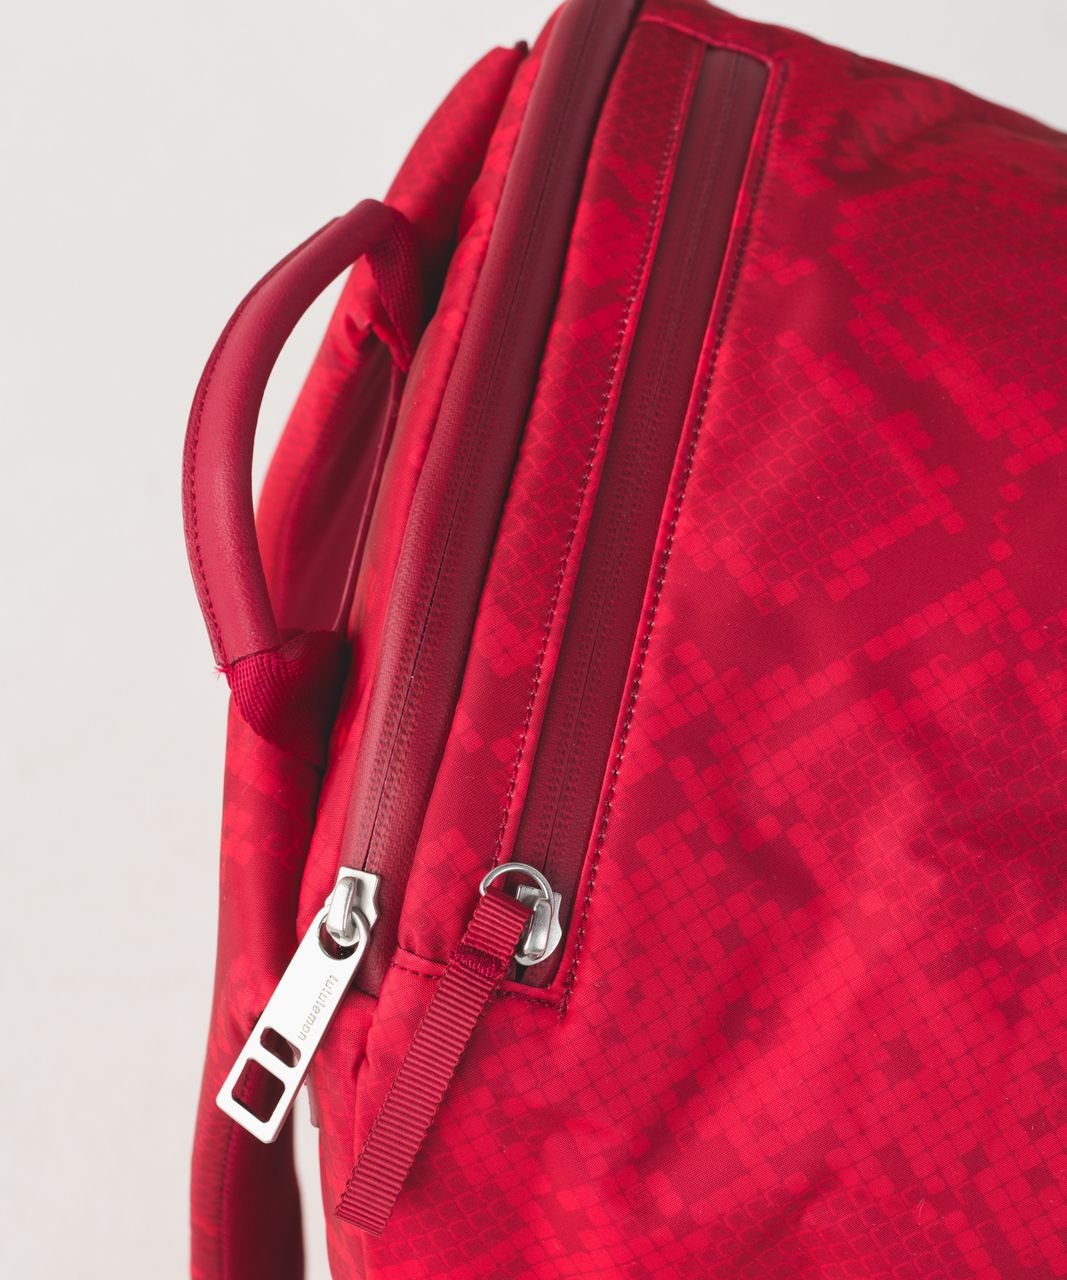 Lululemon Pack It Up Backpack - Simply Ziggy Snake Red Tide Cranberry / Cranberry